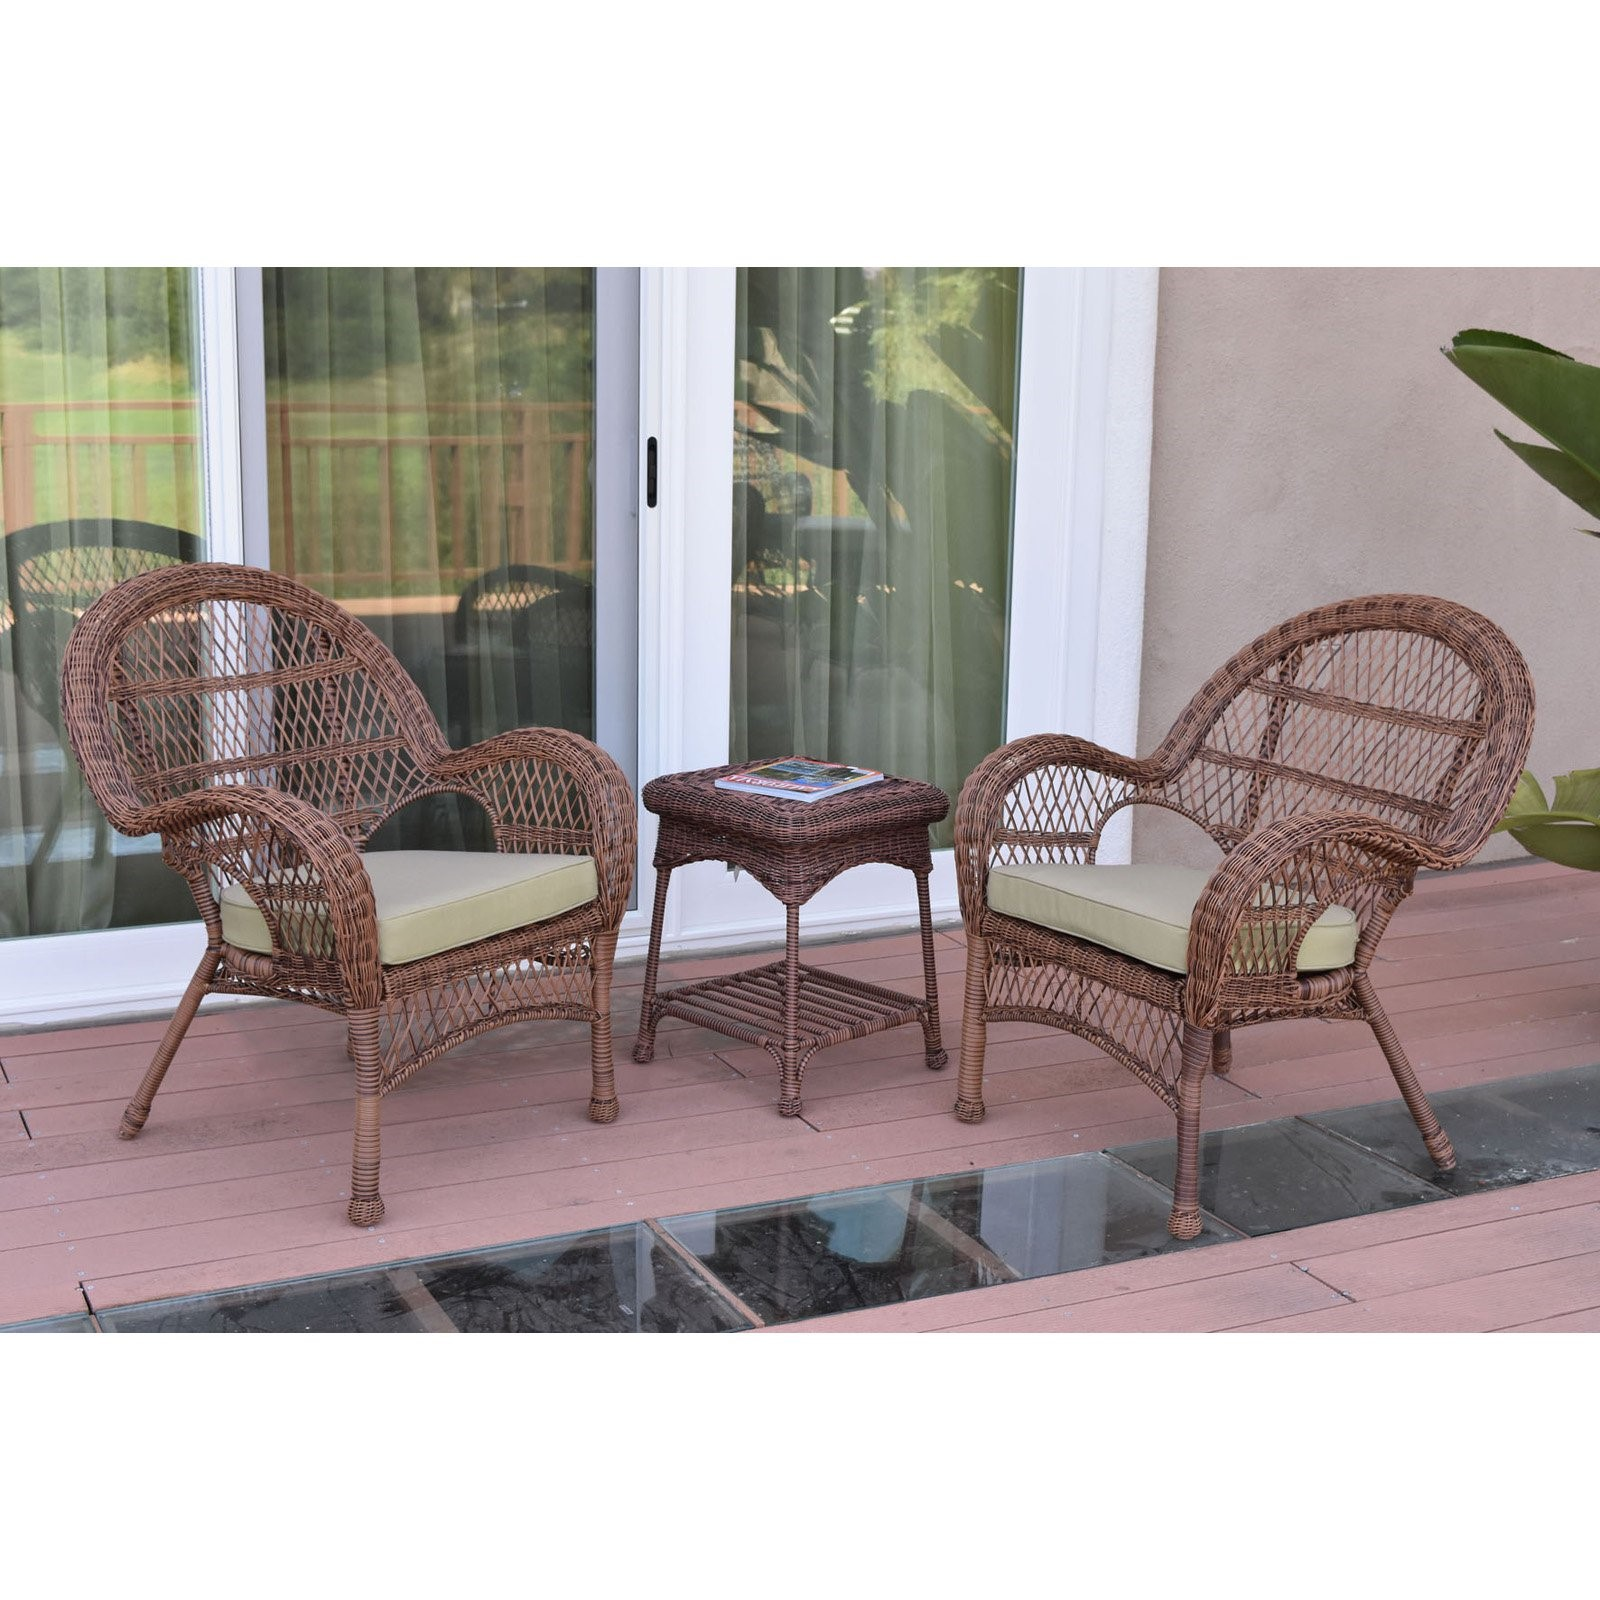 Jeco 3 Piece Santa Maria Wicker Chair Set